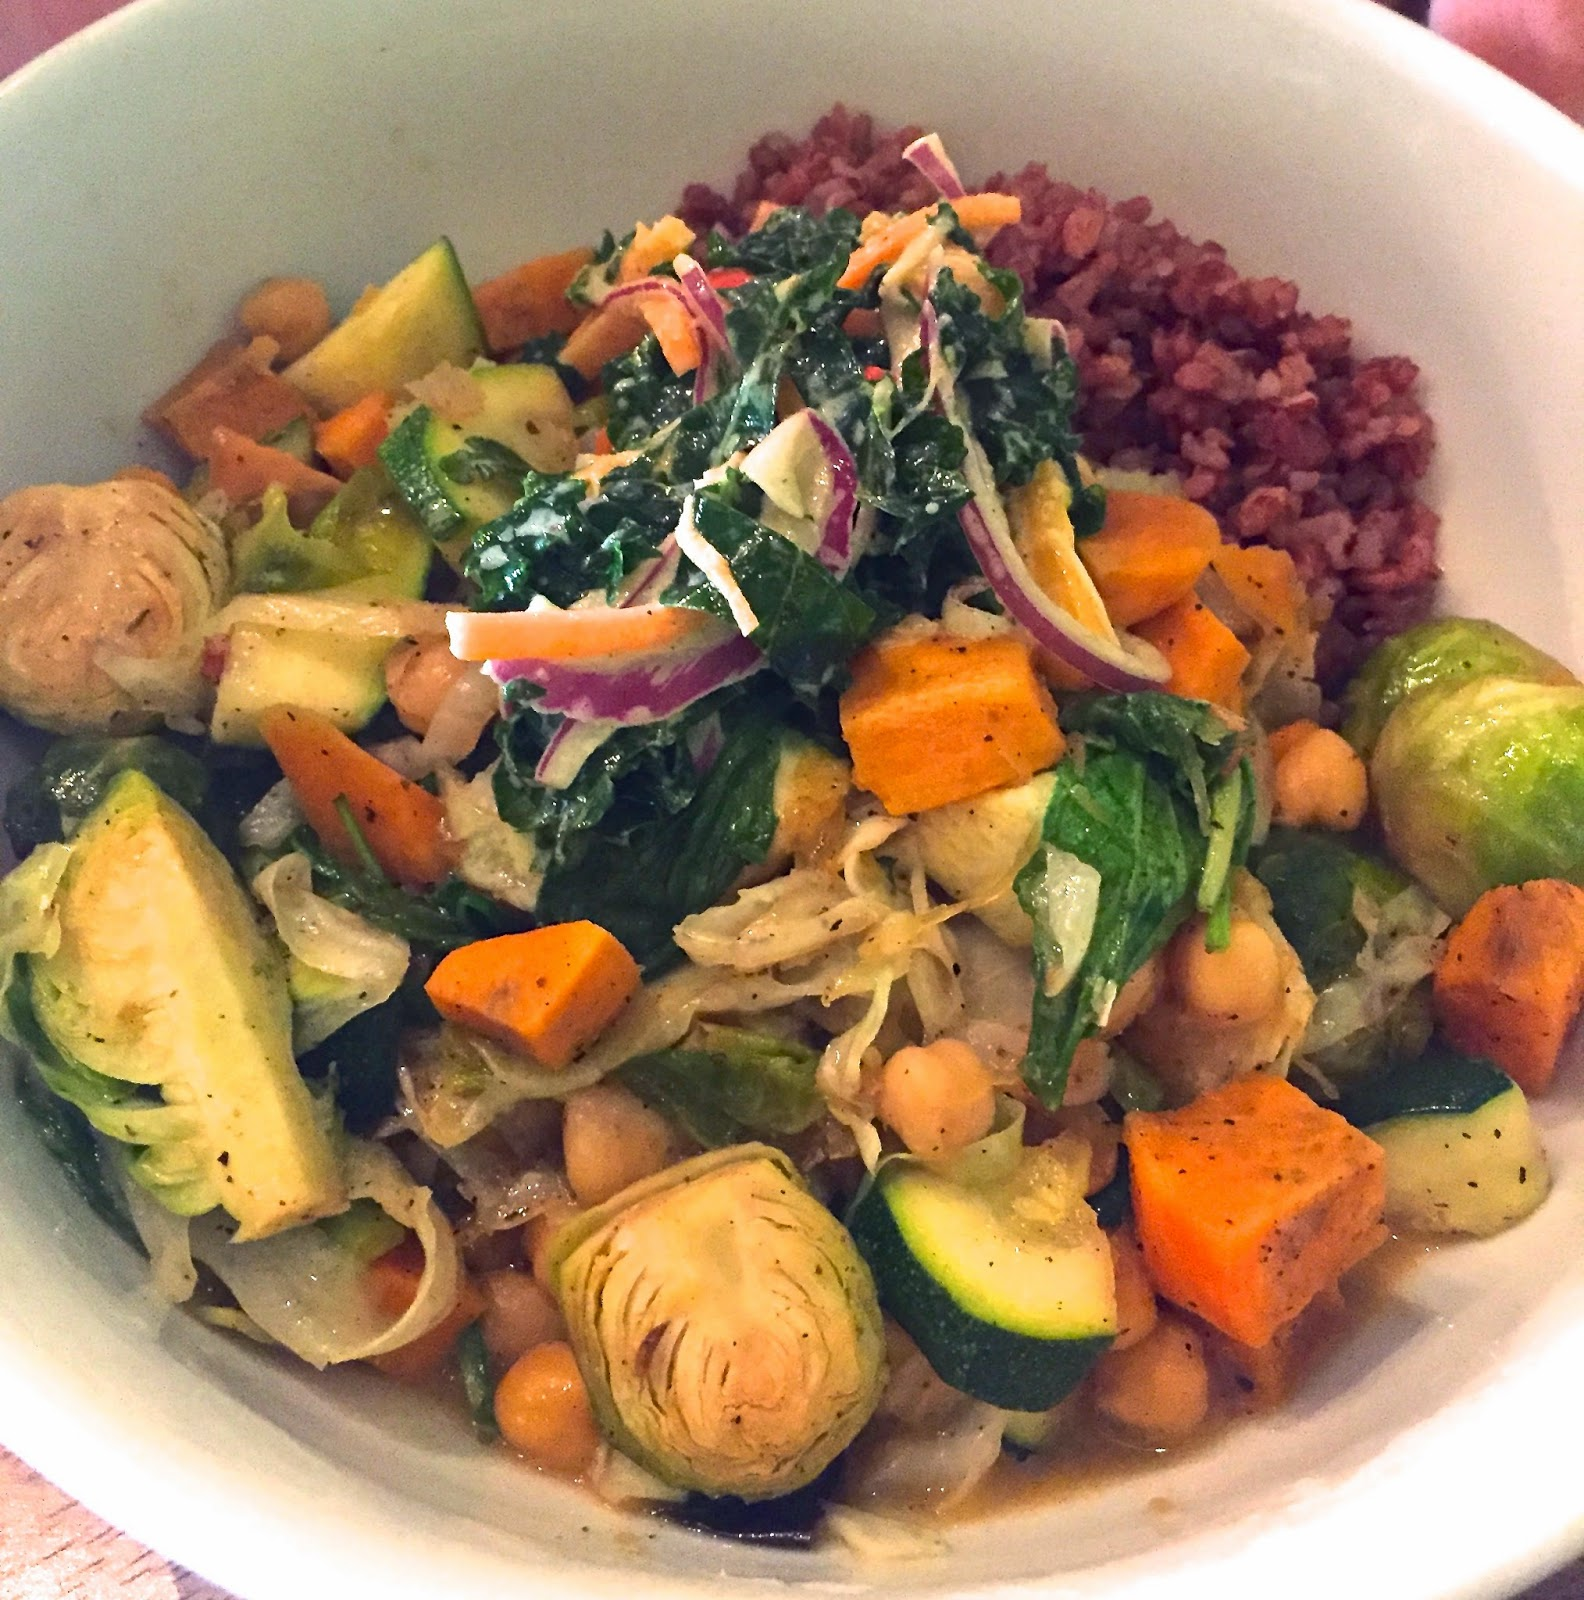 Laughing Buddha Bowl - Fern, Flavors from the Garden Vegetarian